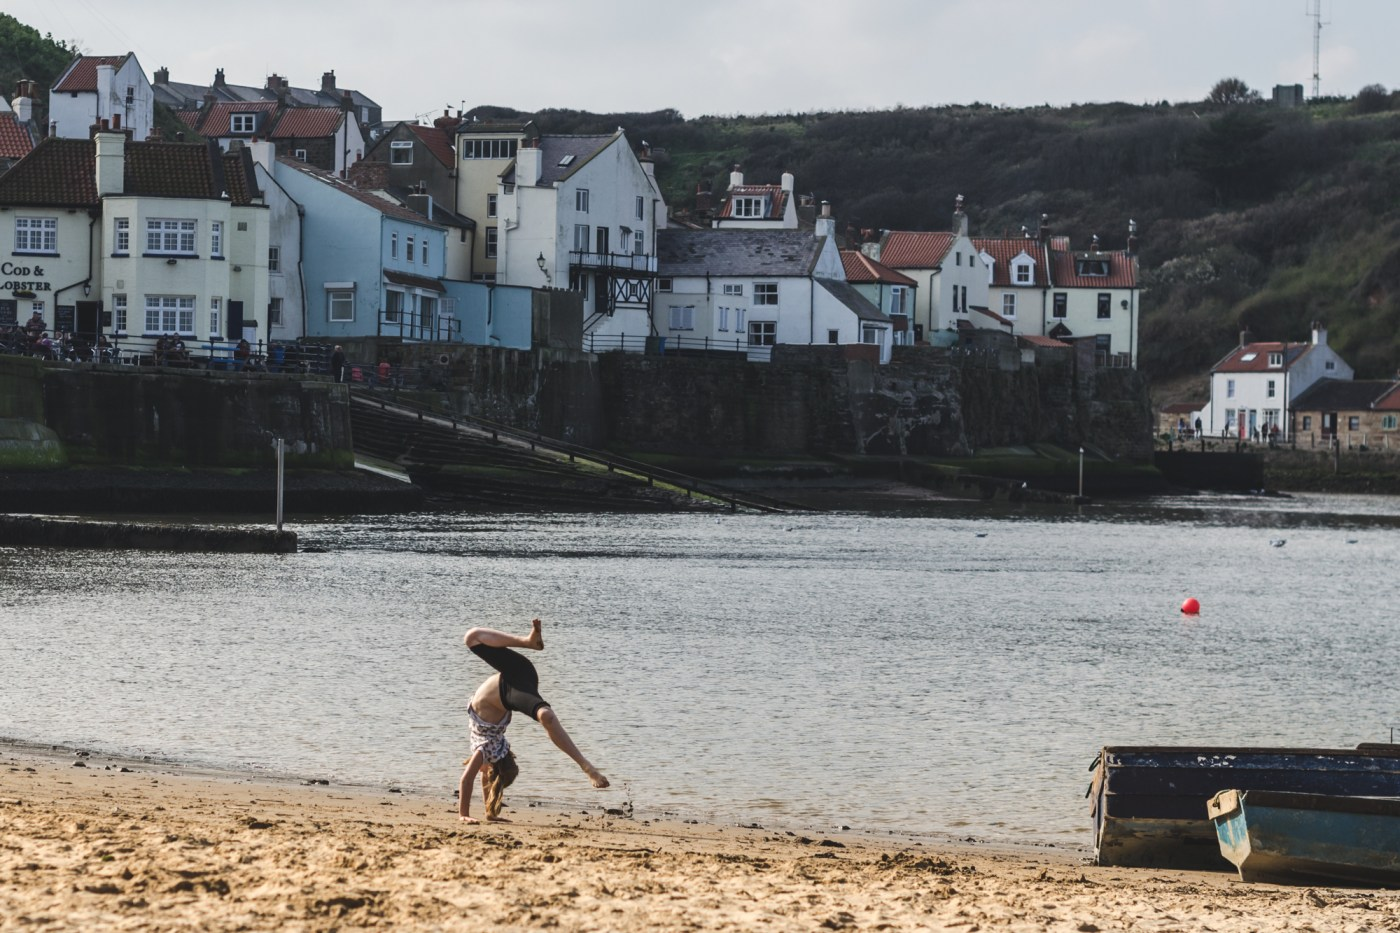 Beach in Staithes, Yorkshire, England